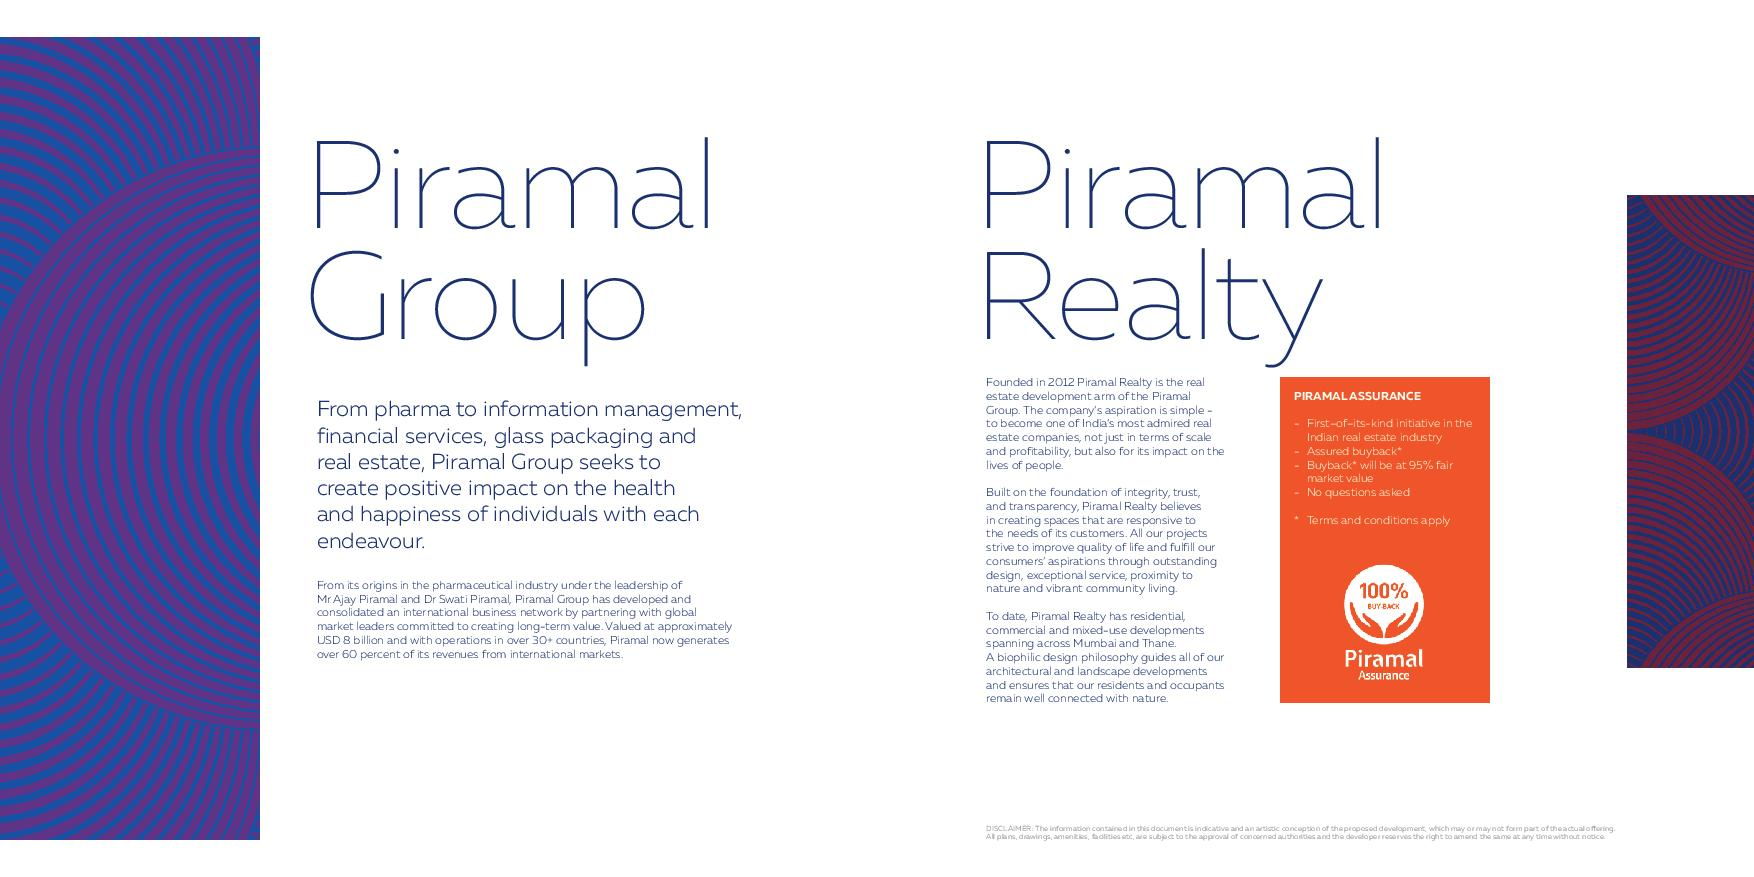 Piramal group piramal realty Revanta